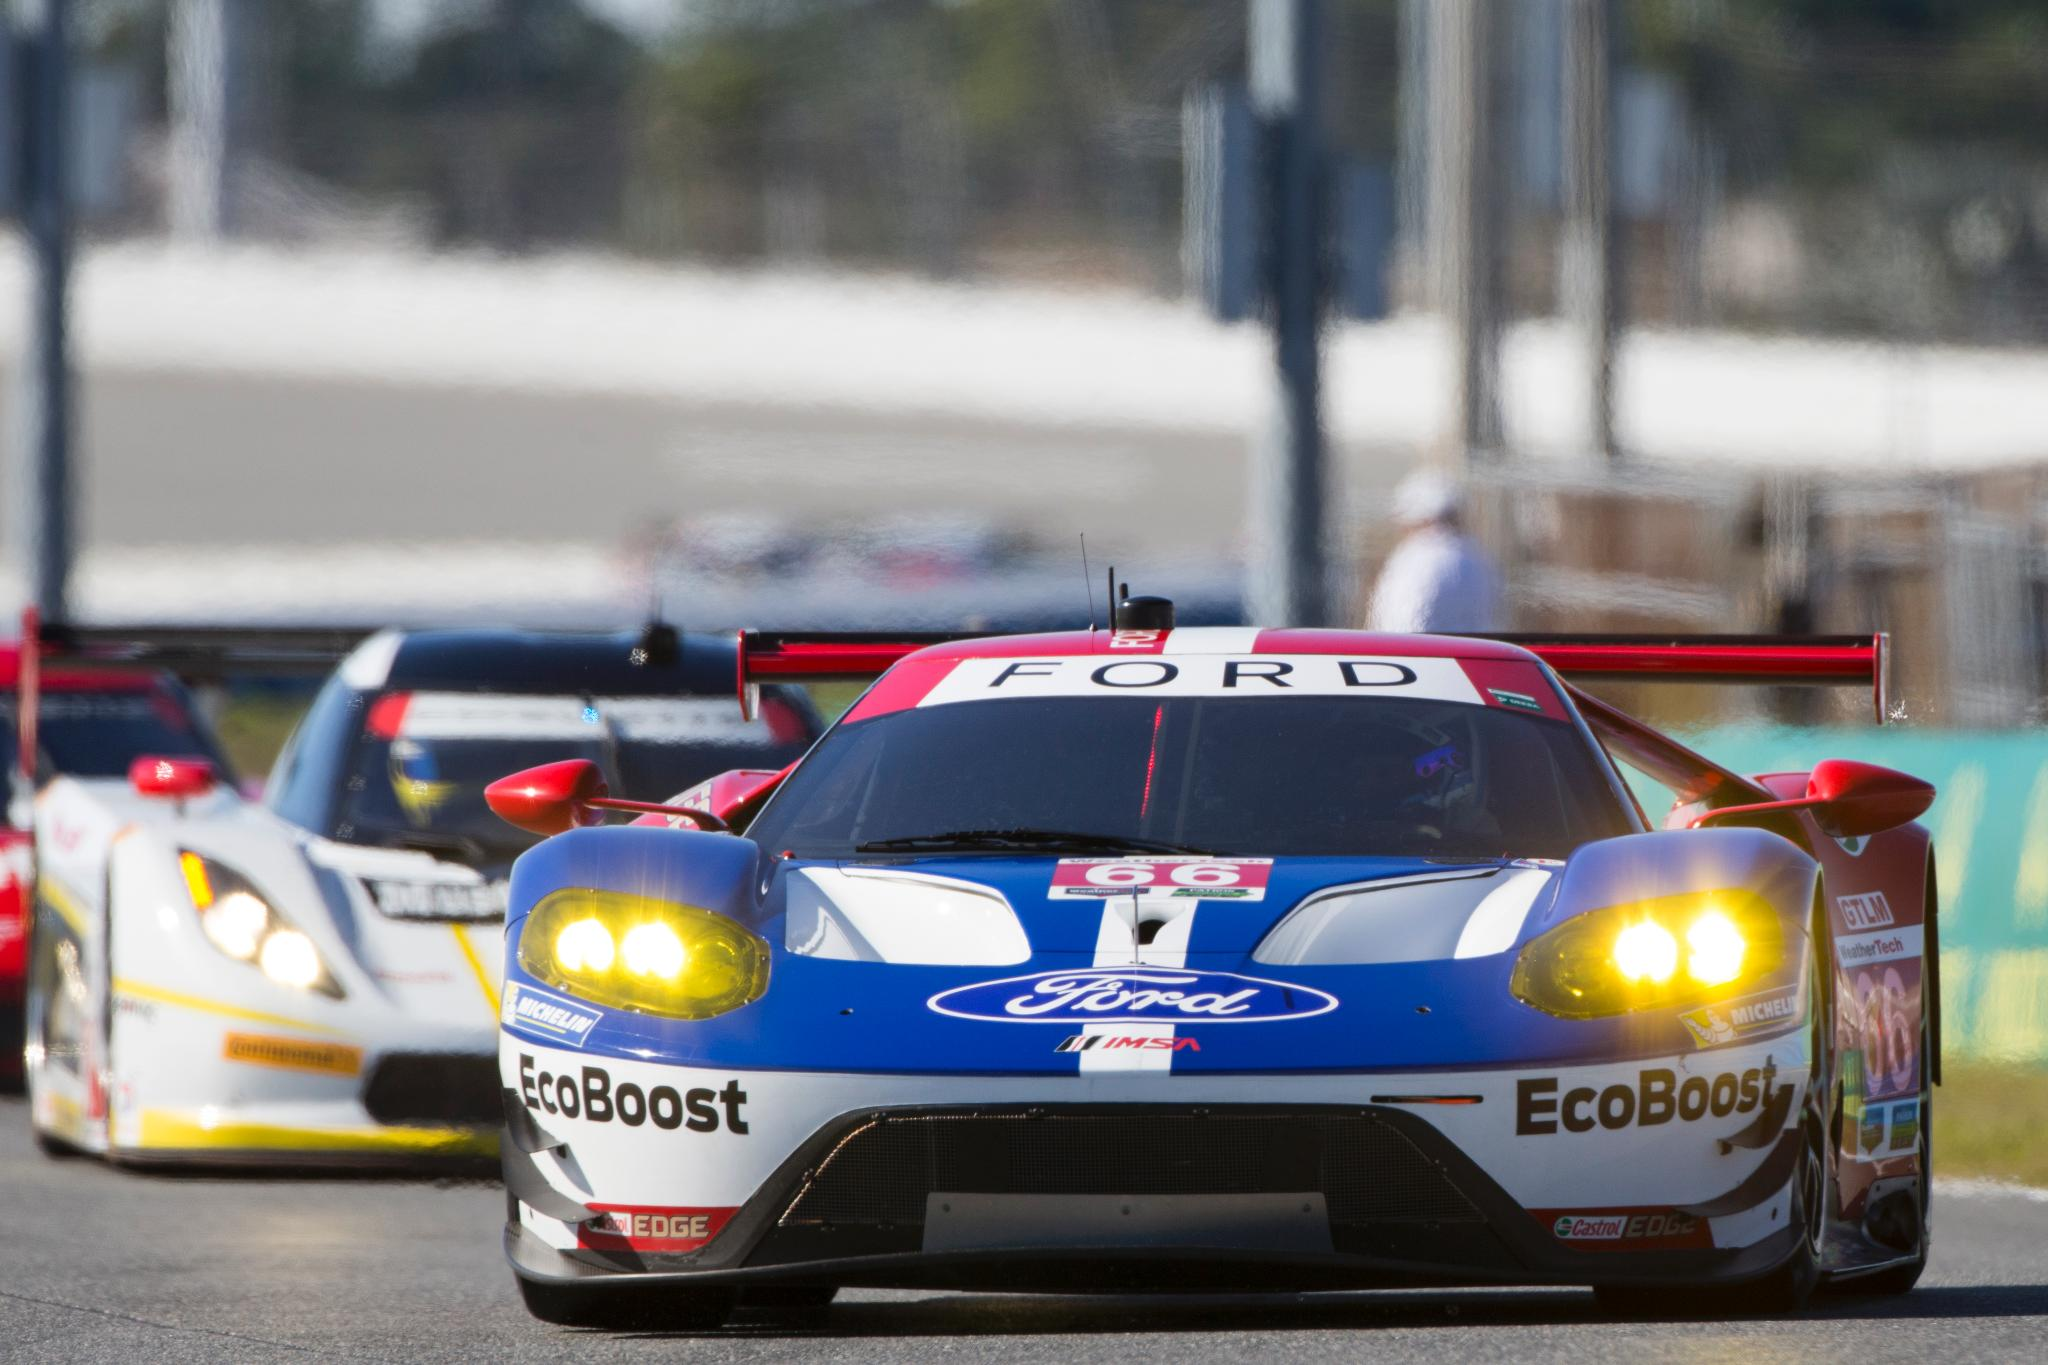 One hour into the #Rolex24! In class position: #02EcoBoost P4, #01EcoBoost P9, #66FordGT P3, #67FordGT P11. https://t.co/dc35I9gRqd